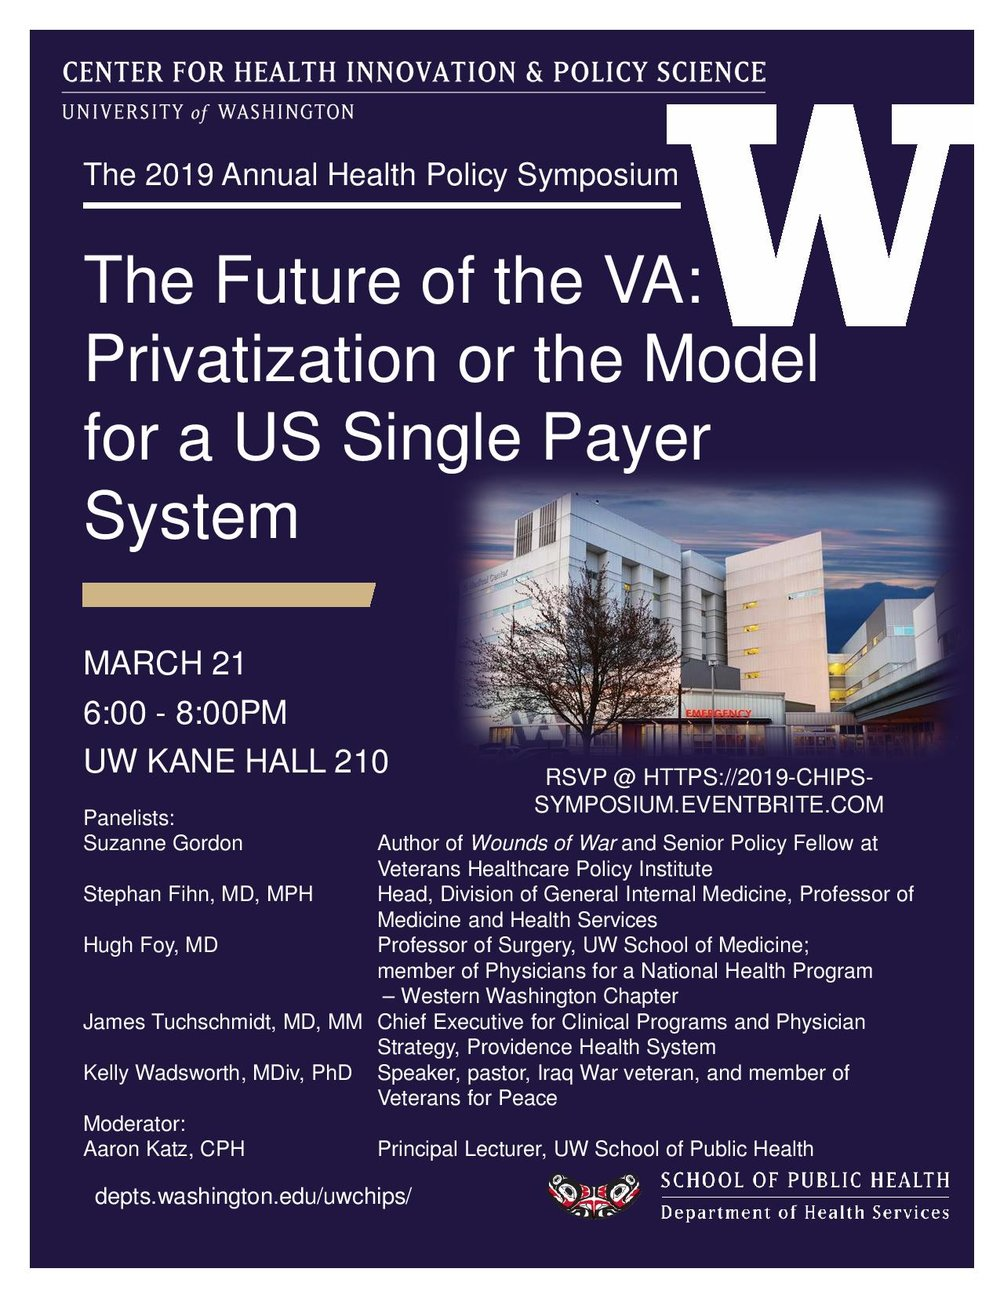 """Eventbrite    The Future of the VA: Privatization or the Model for a US Single Payer System?    About this Event   The University of Washington (UW)  Center for Health Innovation & Policy Science (CHIPS)  presents its  inaugural  Annual Health Policy Symposium, """"The Future of the VA: Privatization or the Model for a US Single Payer System?"""" Please join us for a timely and thought-provoking discussion followed by a period for audience questions, moderated by UW heath policy expert,  Aaron Katz .   Tickets:   The event is open to the public, but space is limited to 240 people. Therefore, please RSVP via  Eventbrite  by clicking the green """"Register"""" button and checking out your free ticket.   Panelists include:    Suzanne Gordon - Author of Wounds of War and Senior Policy Fellow at Veterans Healthcare Policy Institute   Stephan Fihn, MD, MPH - Head, Division of General Internal Medicine, Professor of Medicine and Health Services   Hugh Foy, MD - Professor of Surgery, UW School of Medicine; member of Physicians for a National Health Program - Western Washington Chapter   James Tuchschmidt, MD, MM - Chief Executive for Clinical Programs and Physician Strategy, Providence Health Systems   Kelly Wadsworth, MDiv, PhD - Speaker, pastor, Iraq War Veteran, and member of Veterans for Peace   Parking and transit information:   The event takes place at the University of Washington Seattle campus in Kane Hall. The closet parking option is to use  on-campus parking  at the  Central Plaza Garage . However, there is both  free and paid street parking  within a few blocks of the venue. If you plan to use King County Metro Transit, you can use  Plan a Trip  with the venue's address, 4069 Spokane Ln, Seattle, WA 98105, otherwise popular bus lines from Downtown Seattle (70), Magnolia/Fremont (31,32), North Seattle (67, 75, 372, 541/2), Capitol Hill (43), Ballard/Wallingford (44), South Seattle (48,167), and the Eastside (271,277, 540, 541/2, 556), all have stops near the venue.   More in"""